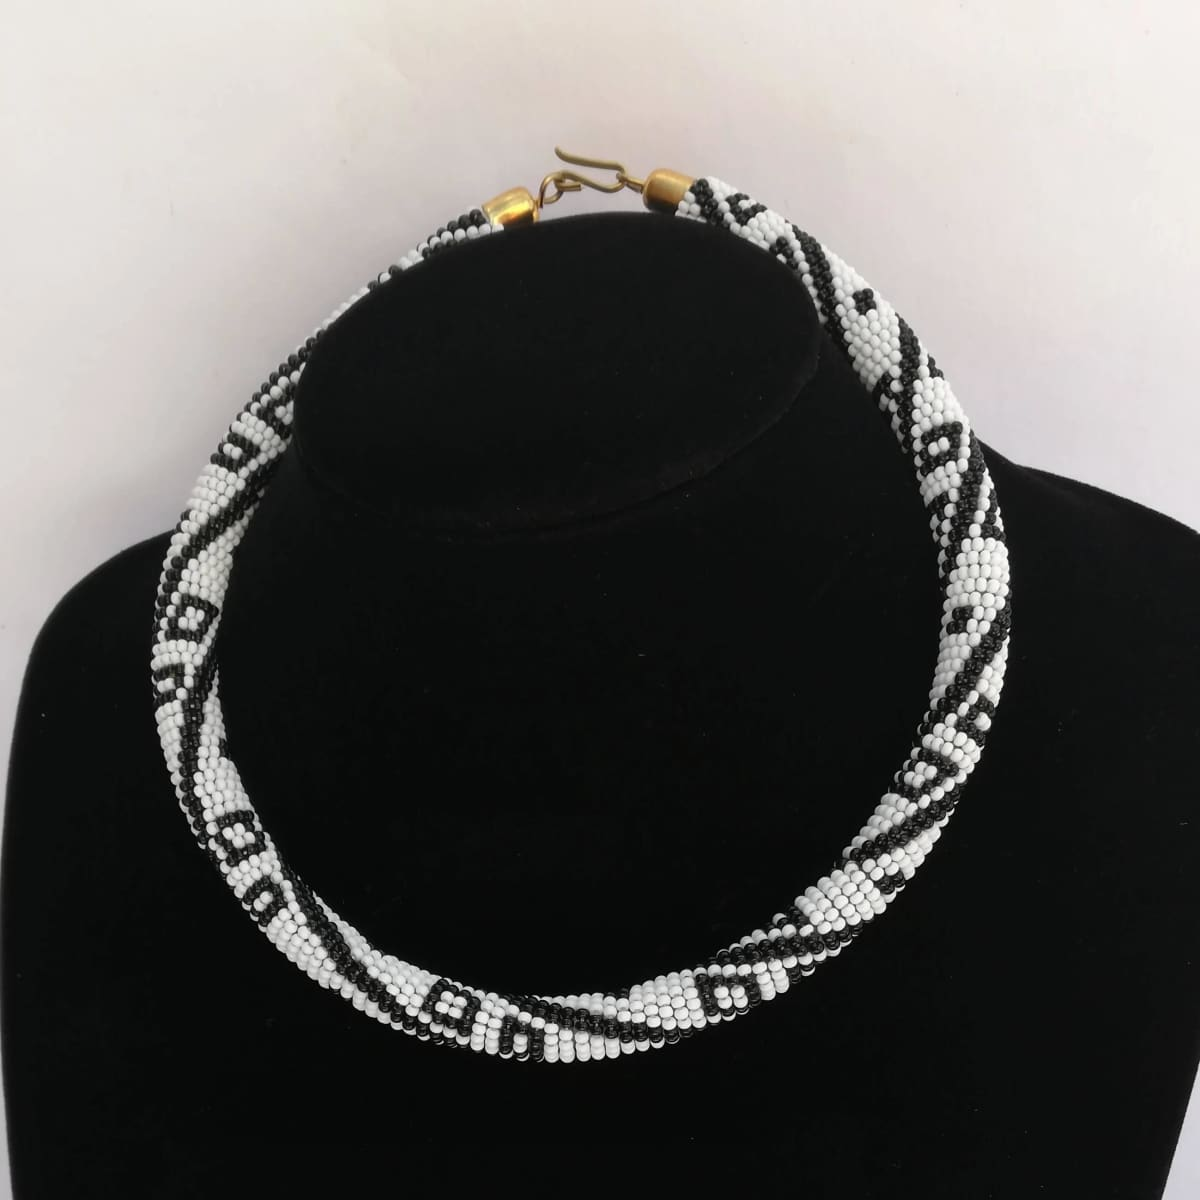 Necklaces Black and White Maasai Beaded Necklace in Unique Design - by Naruki Crafts